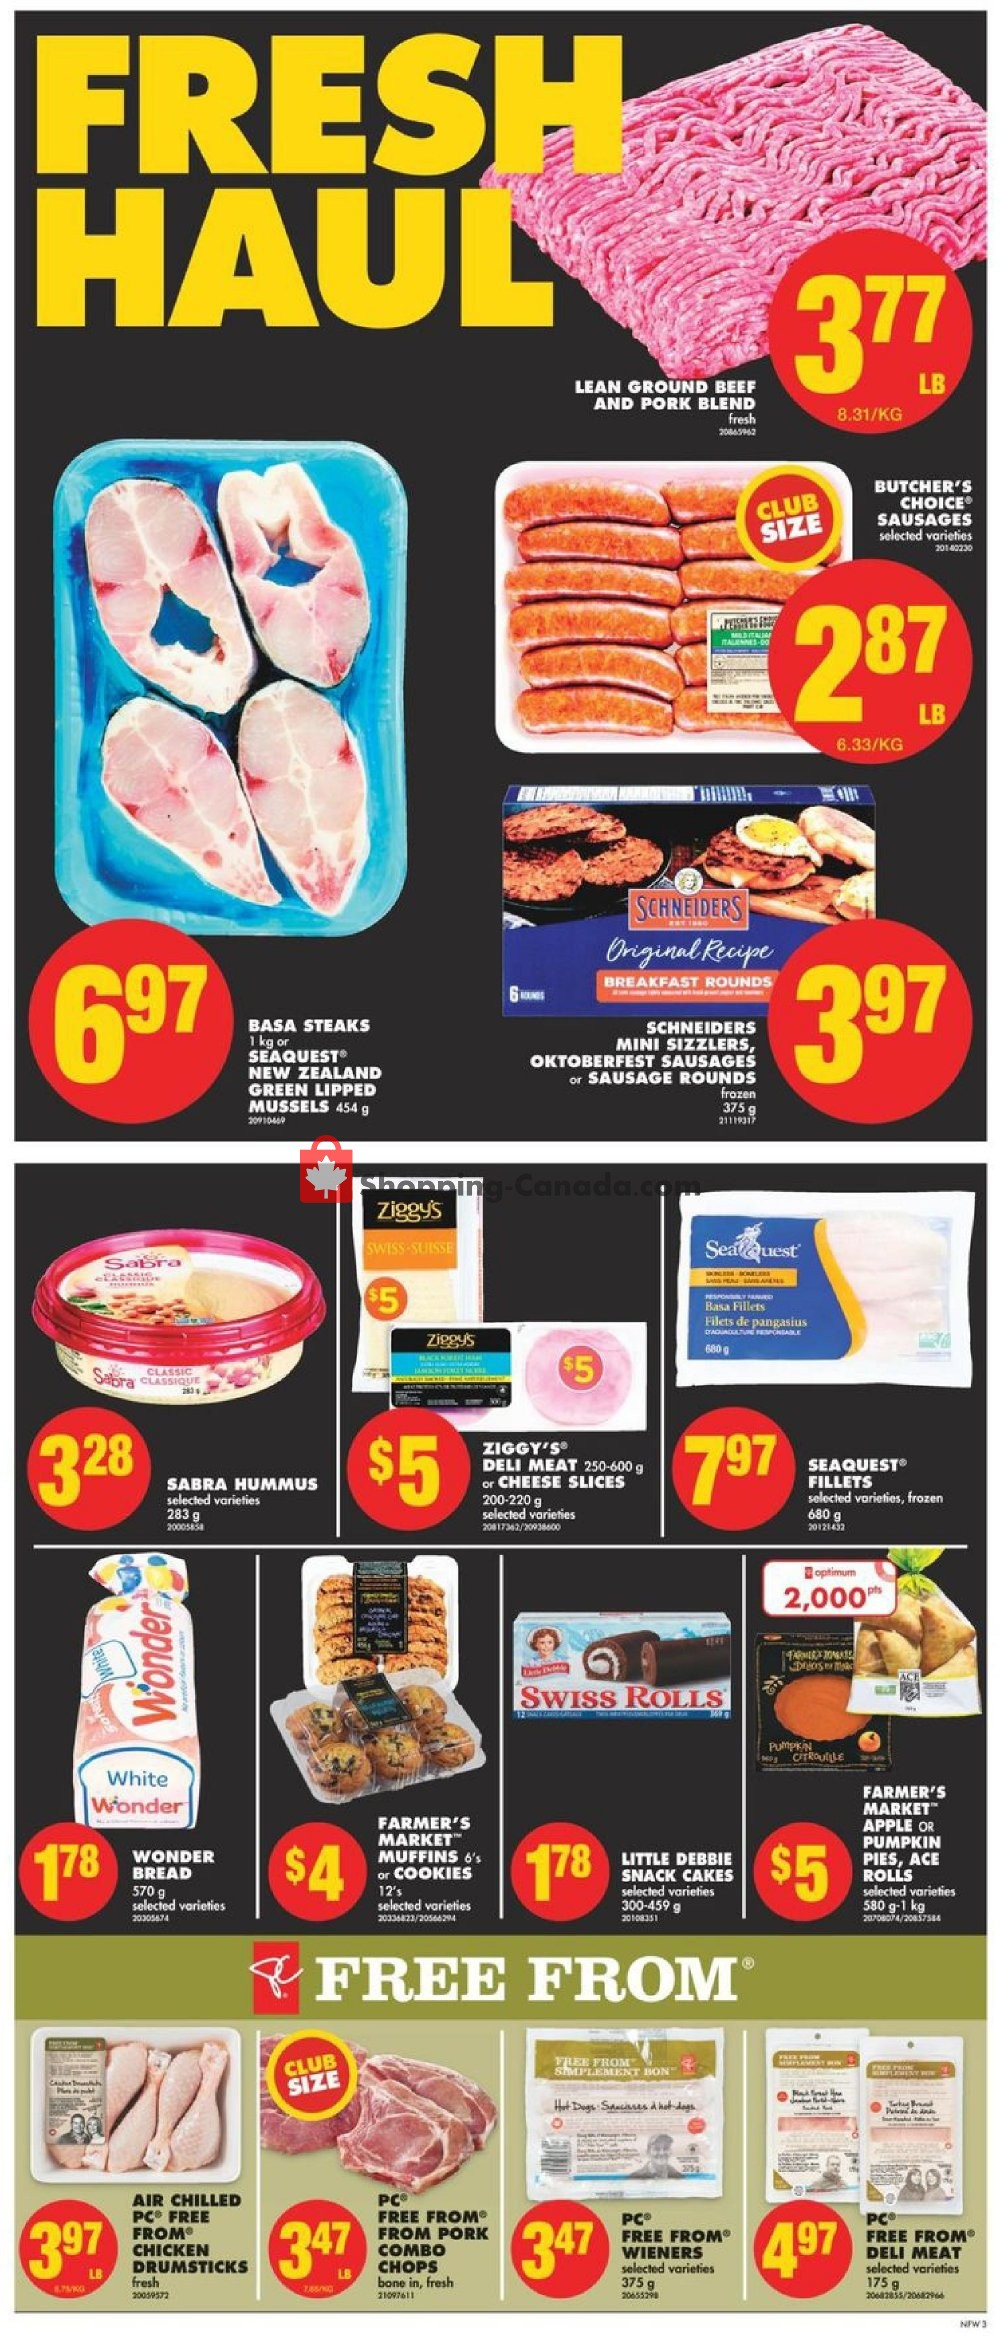 Flyer No Frills Canada - from Friday September 6, 2019 to Thursday September 12, 2019